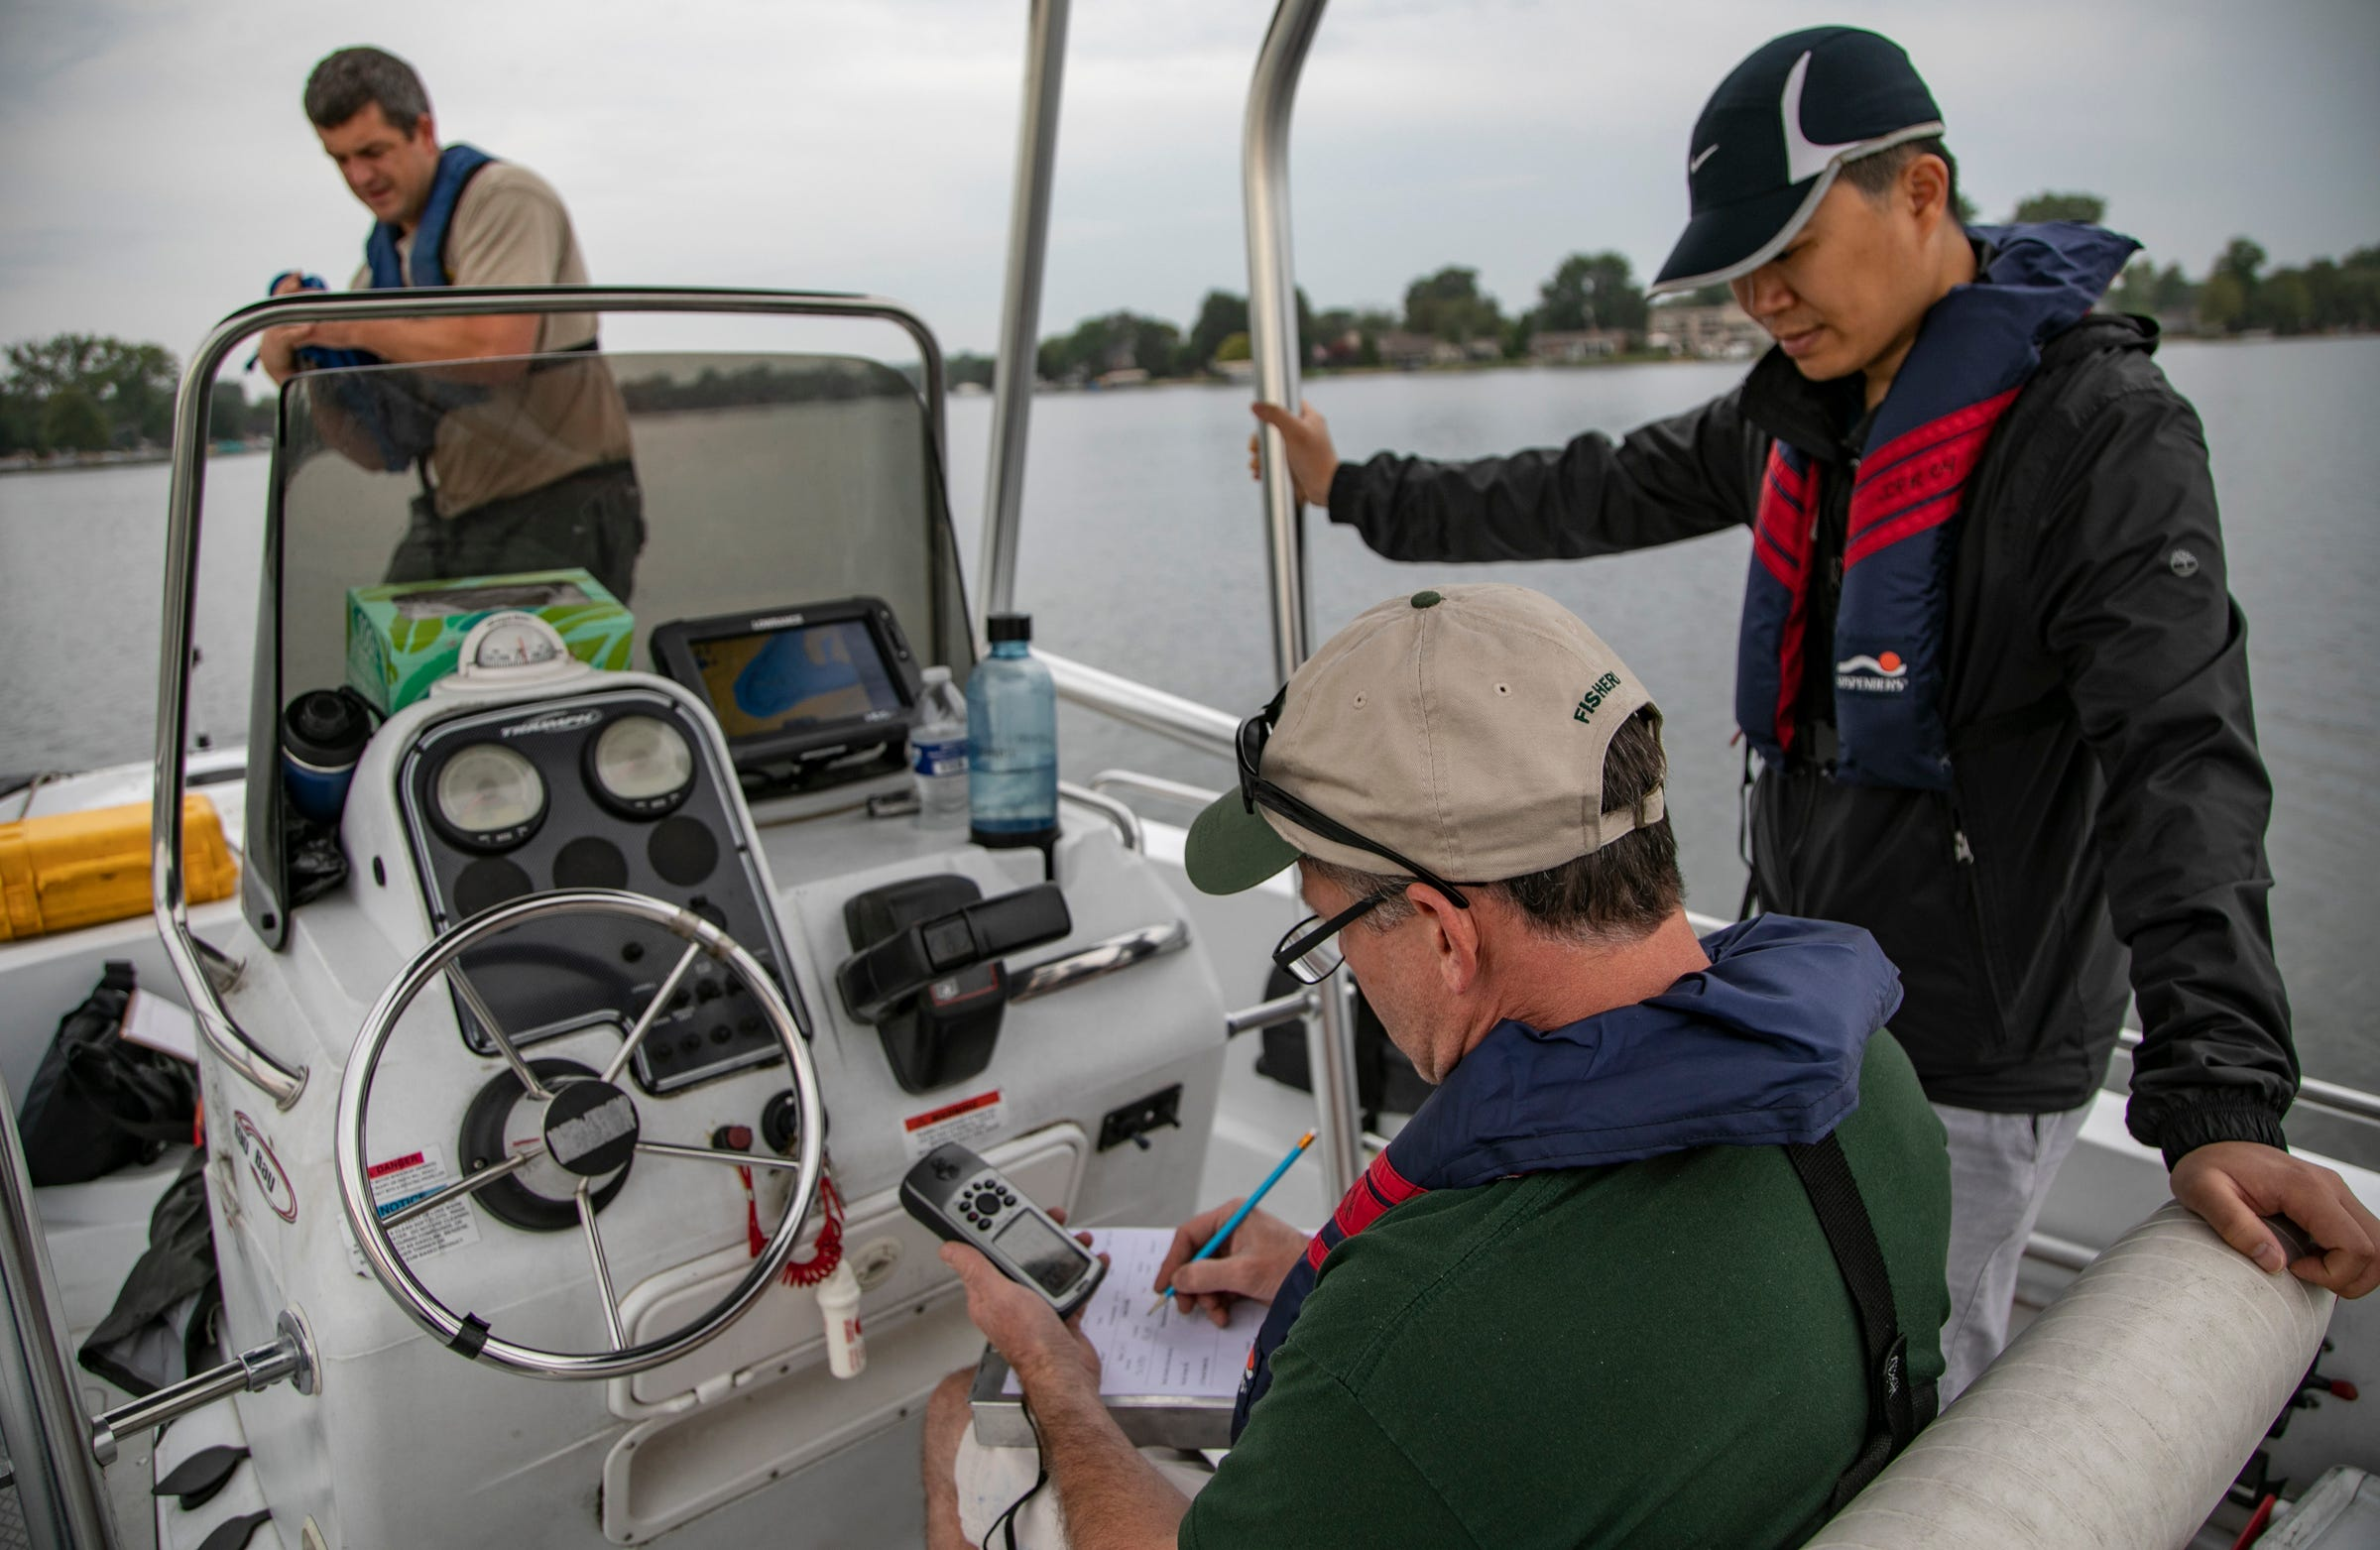 MDNR Resource Analyst Joe Nohner, left, prepares to anchor as Kevin Wehrly a fisheries research biologist with the MDNR's Institute for Fisheries Research marks their GPS coordinates on Cedar Island Lake in White Lake Township Tuesday, Sept. 10, 2019 as Research analyst from MSU Ken Yeh looks on.